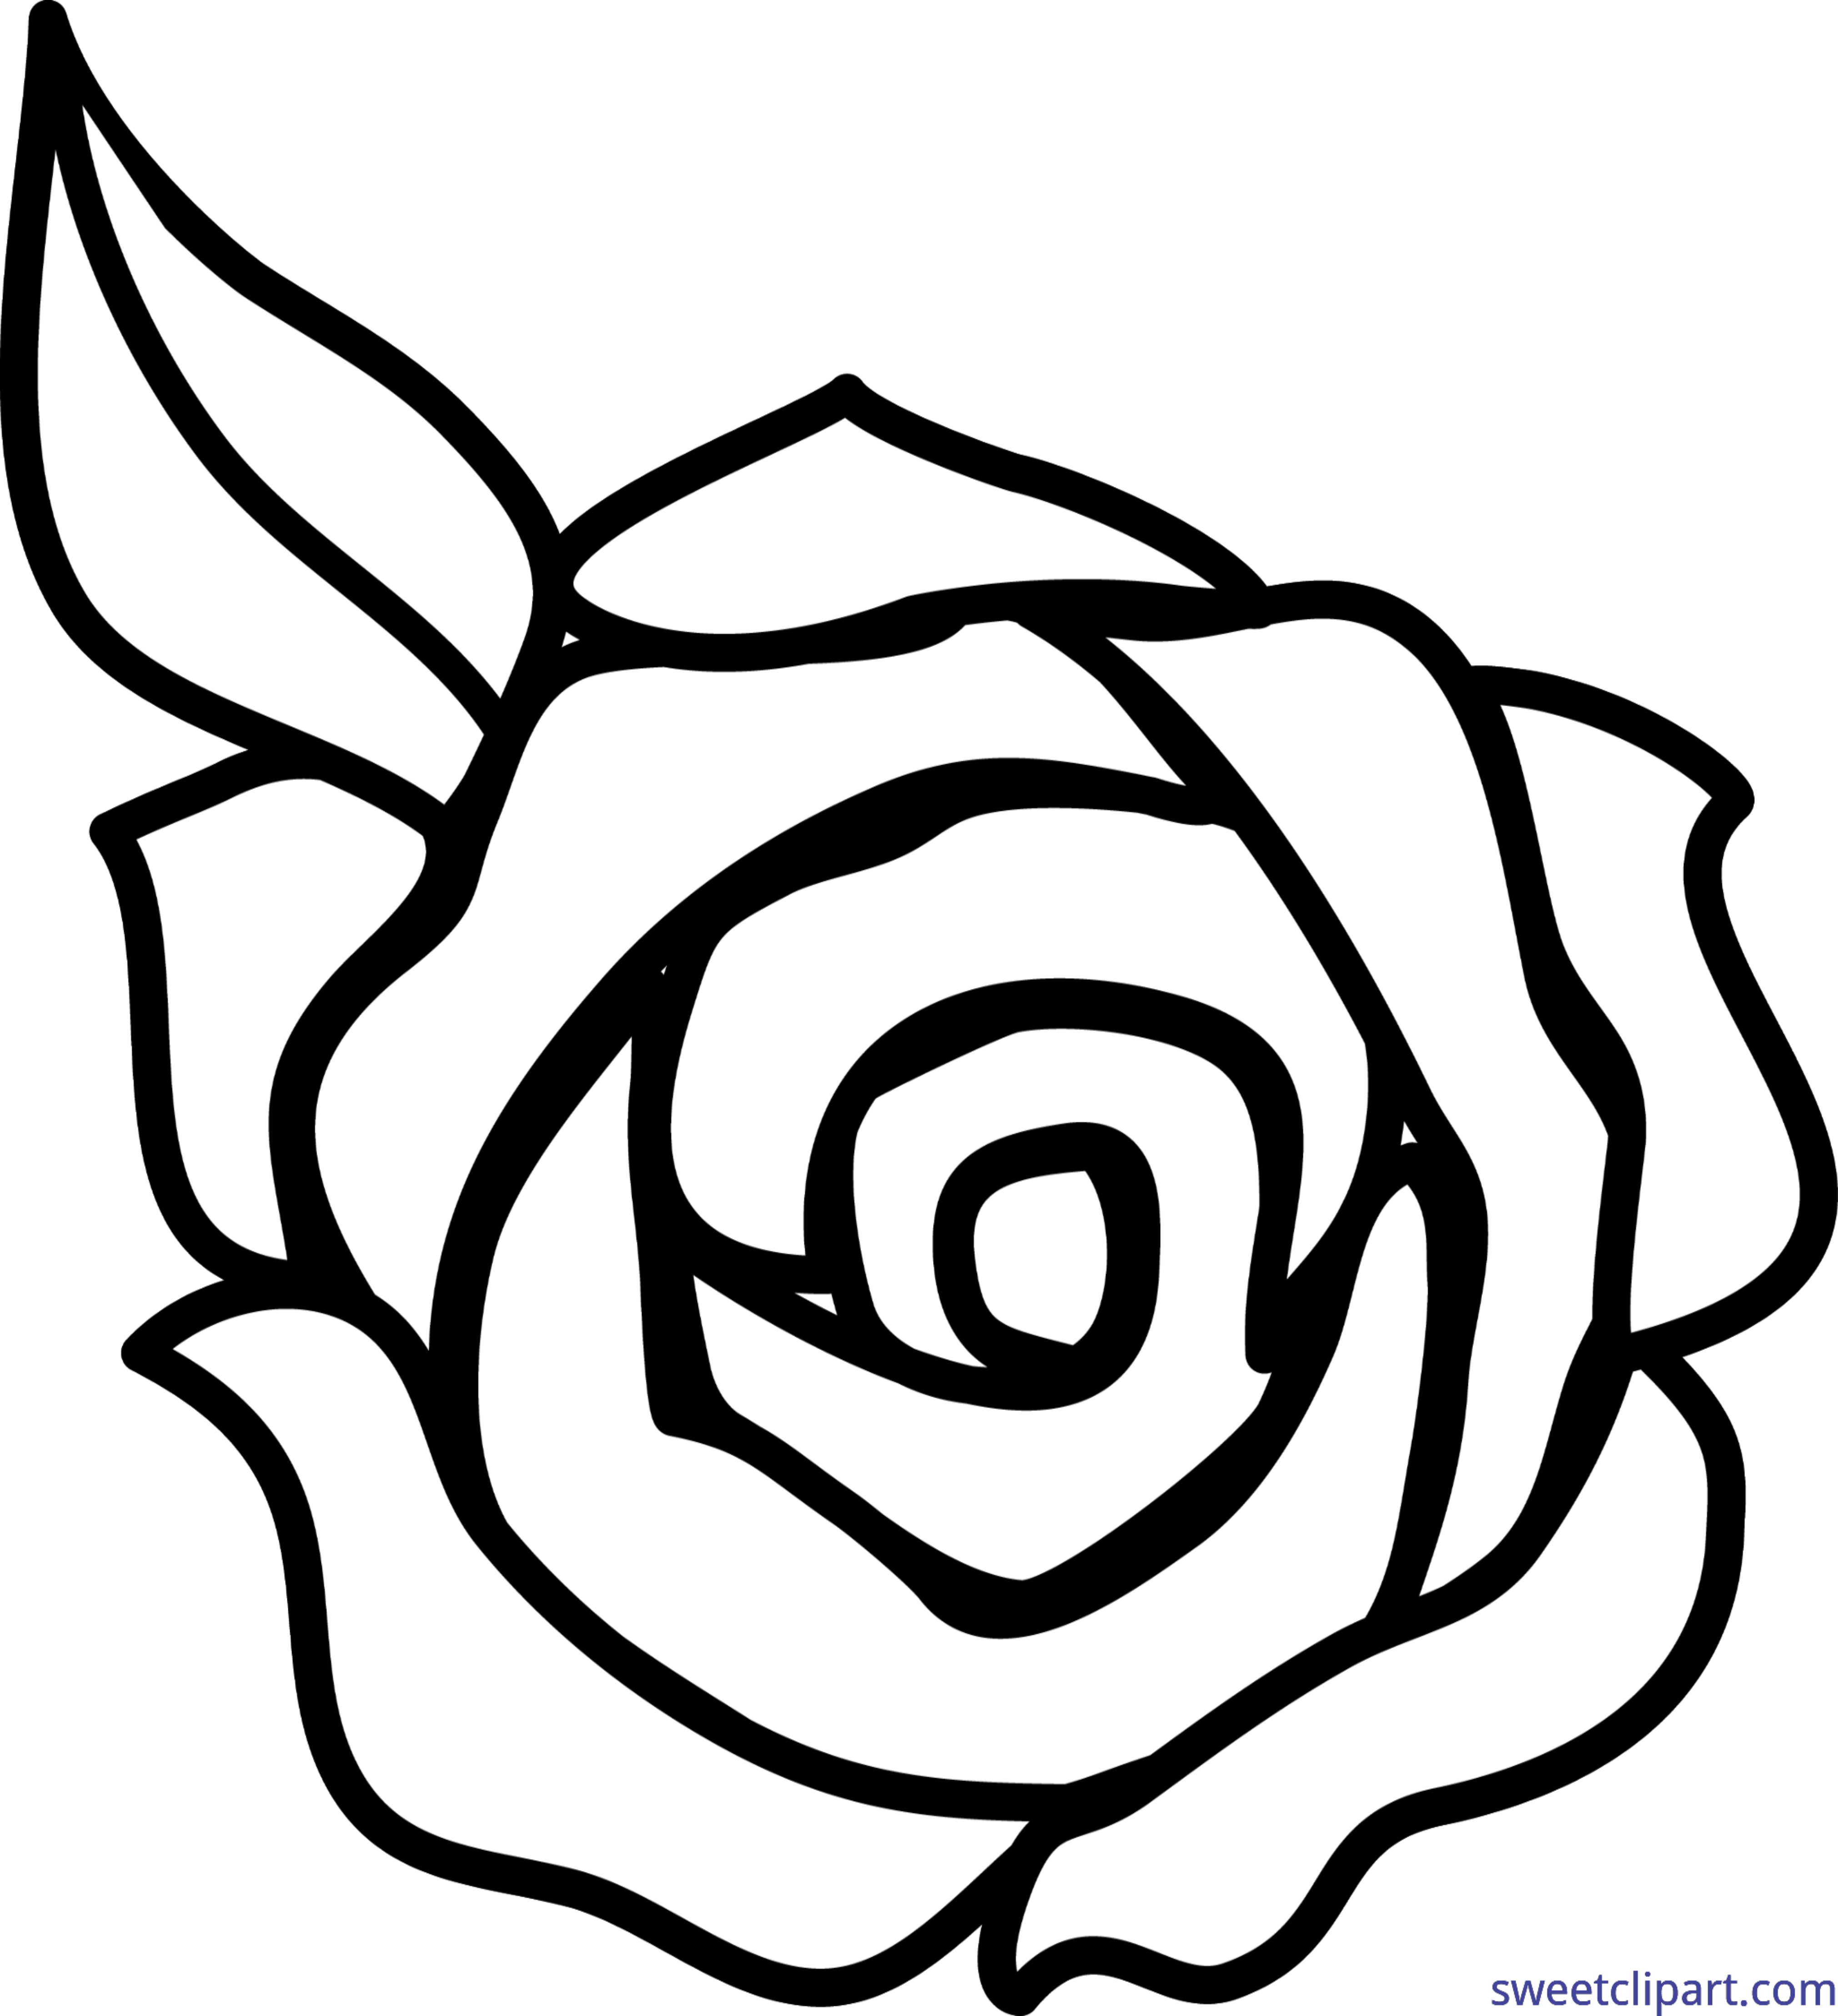 svg library library Family black and white clipart. Rose lineart clip art